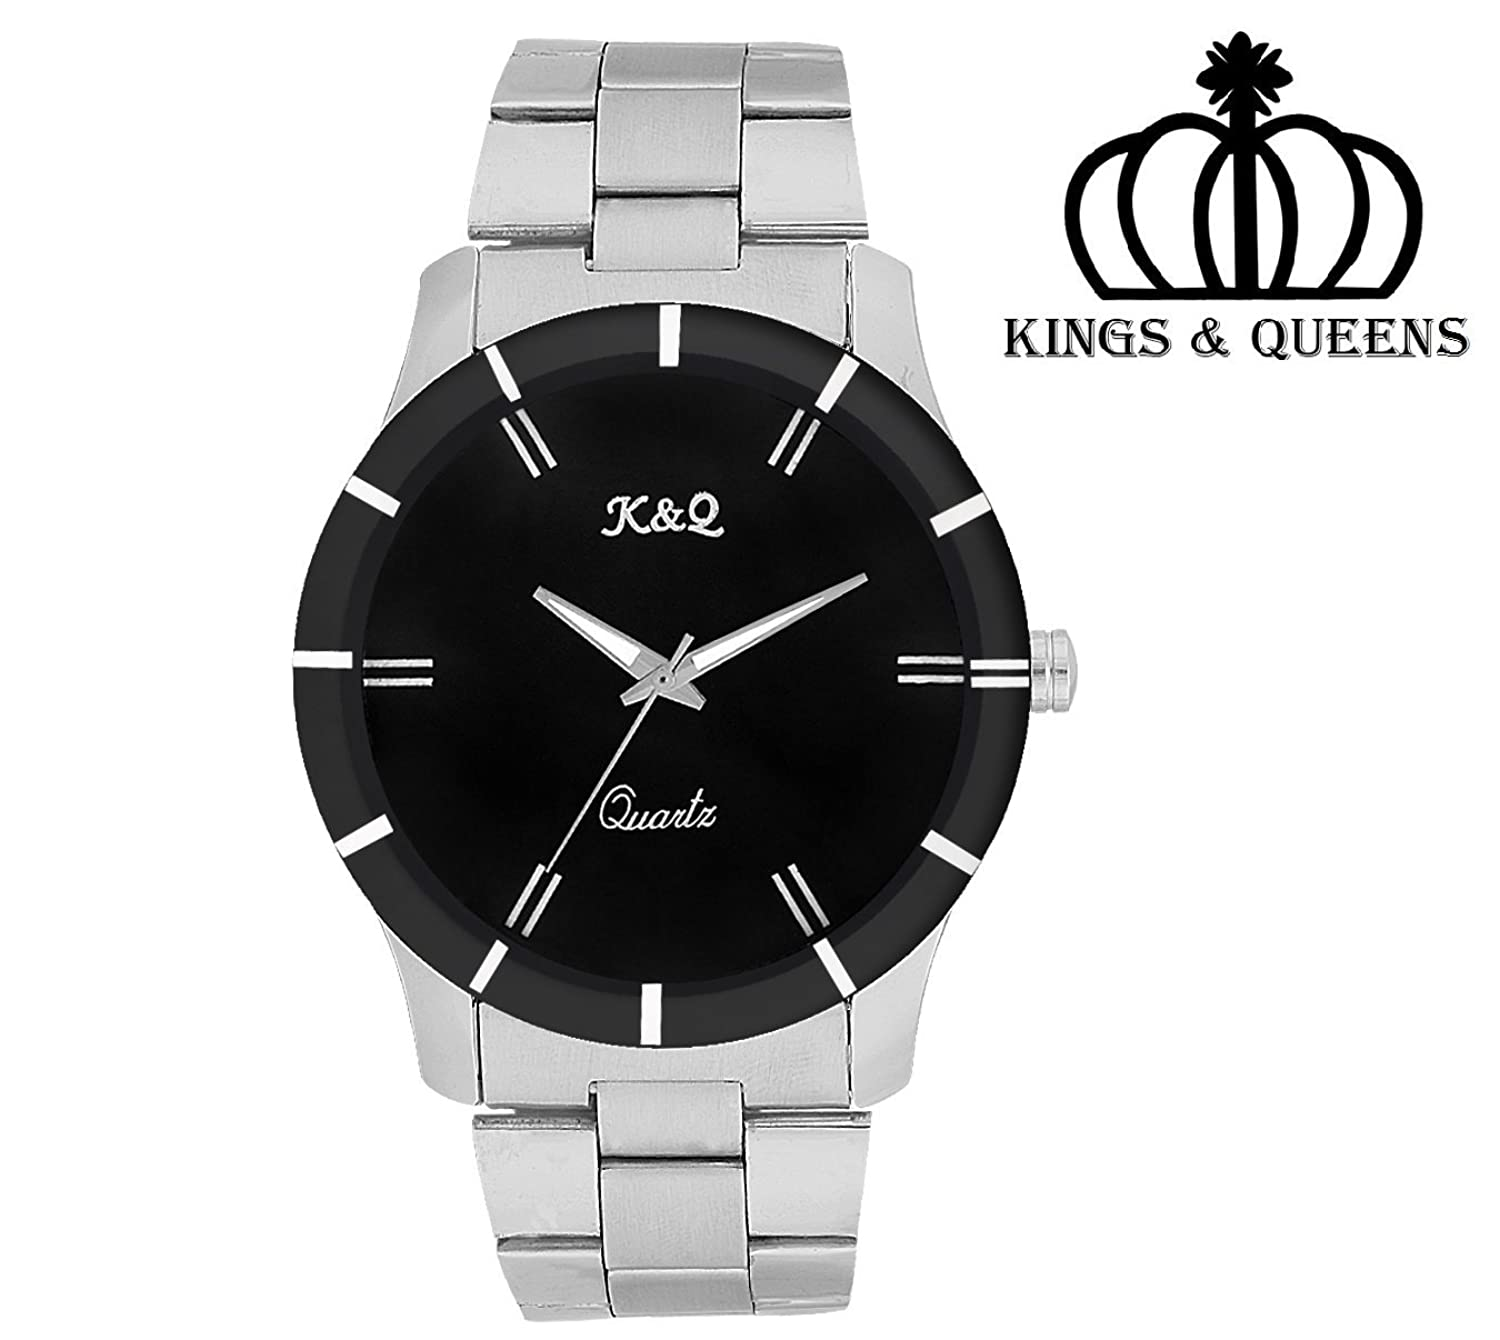 watch addic img wrist analog watches chain silver for round men dial classy heavy black